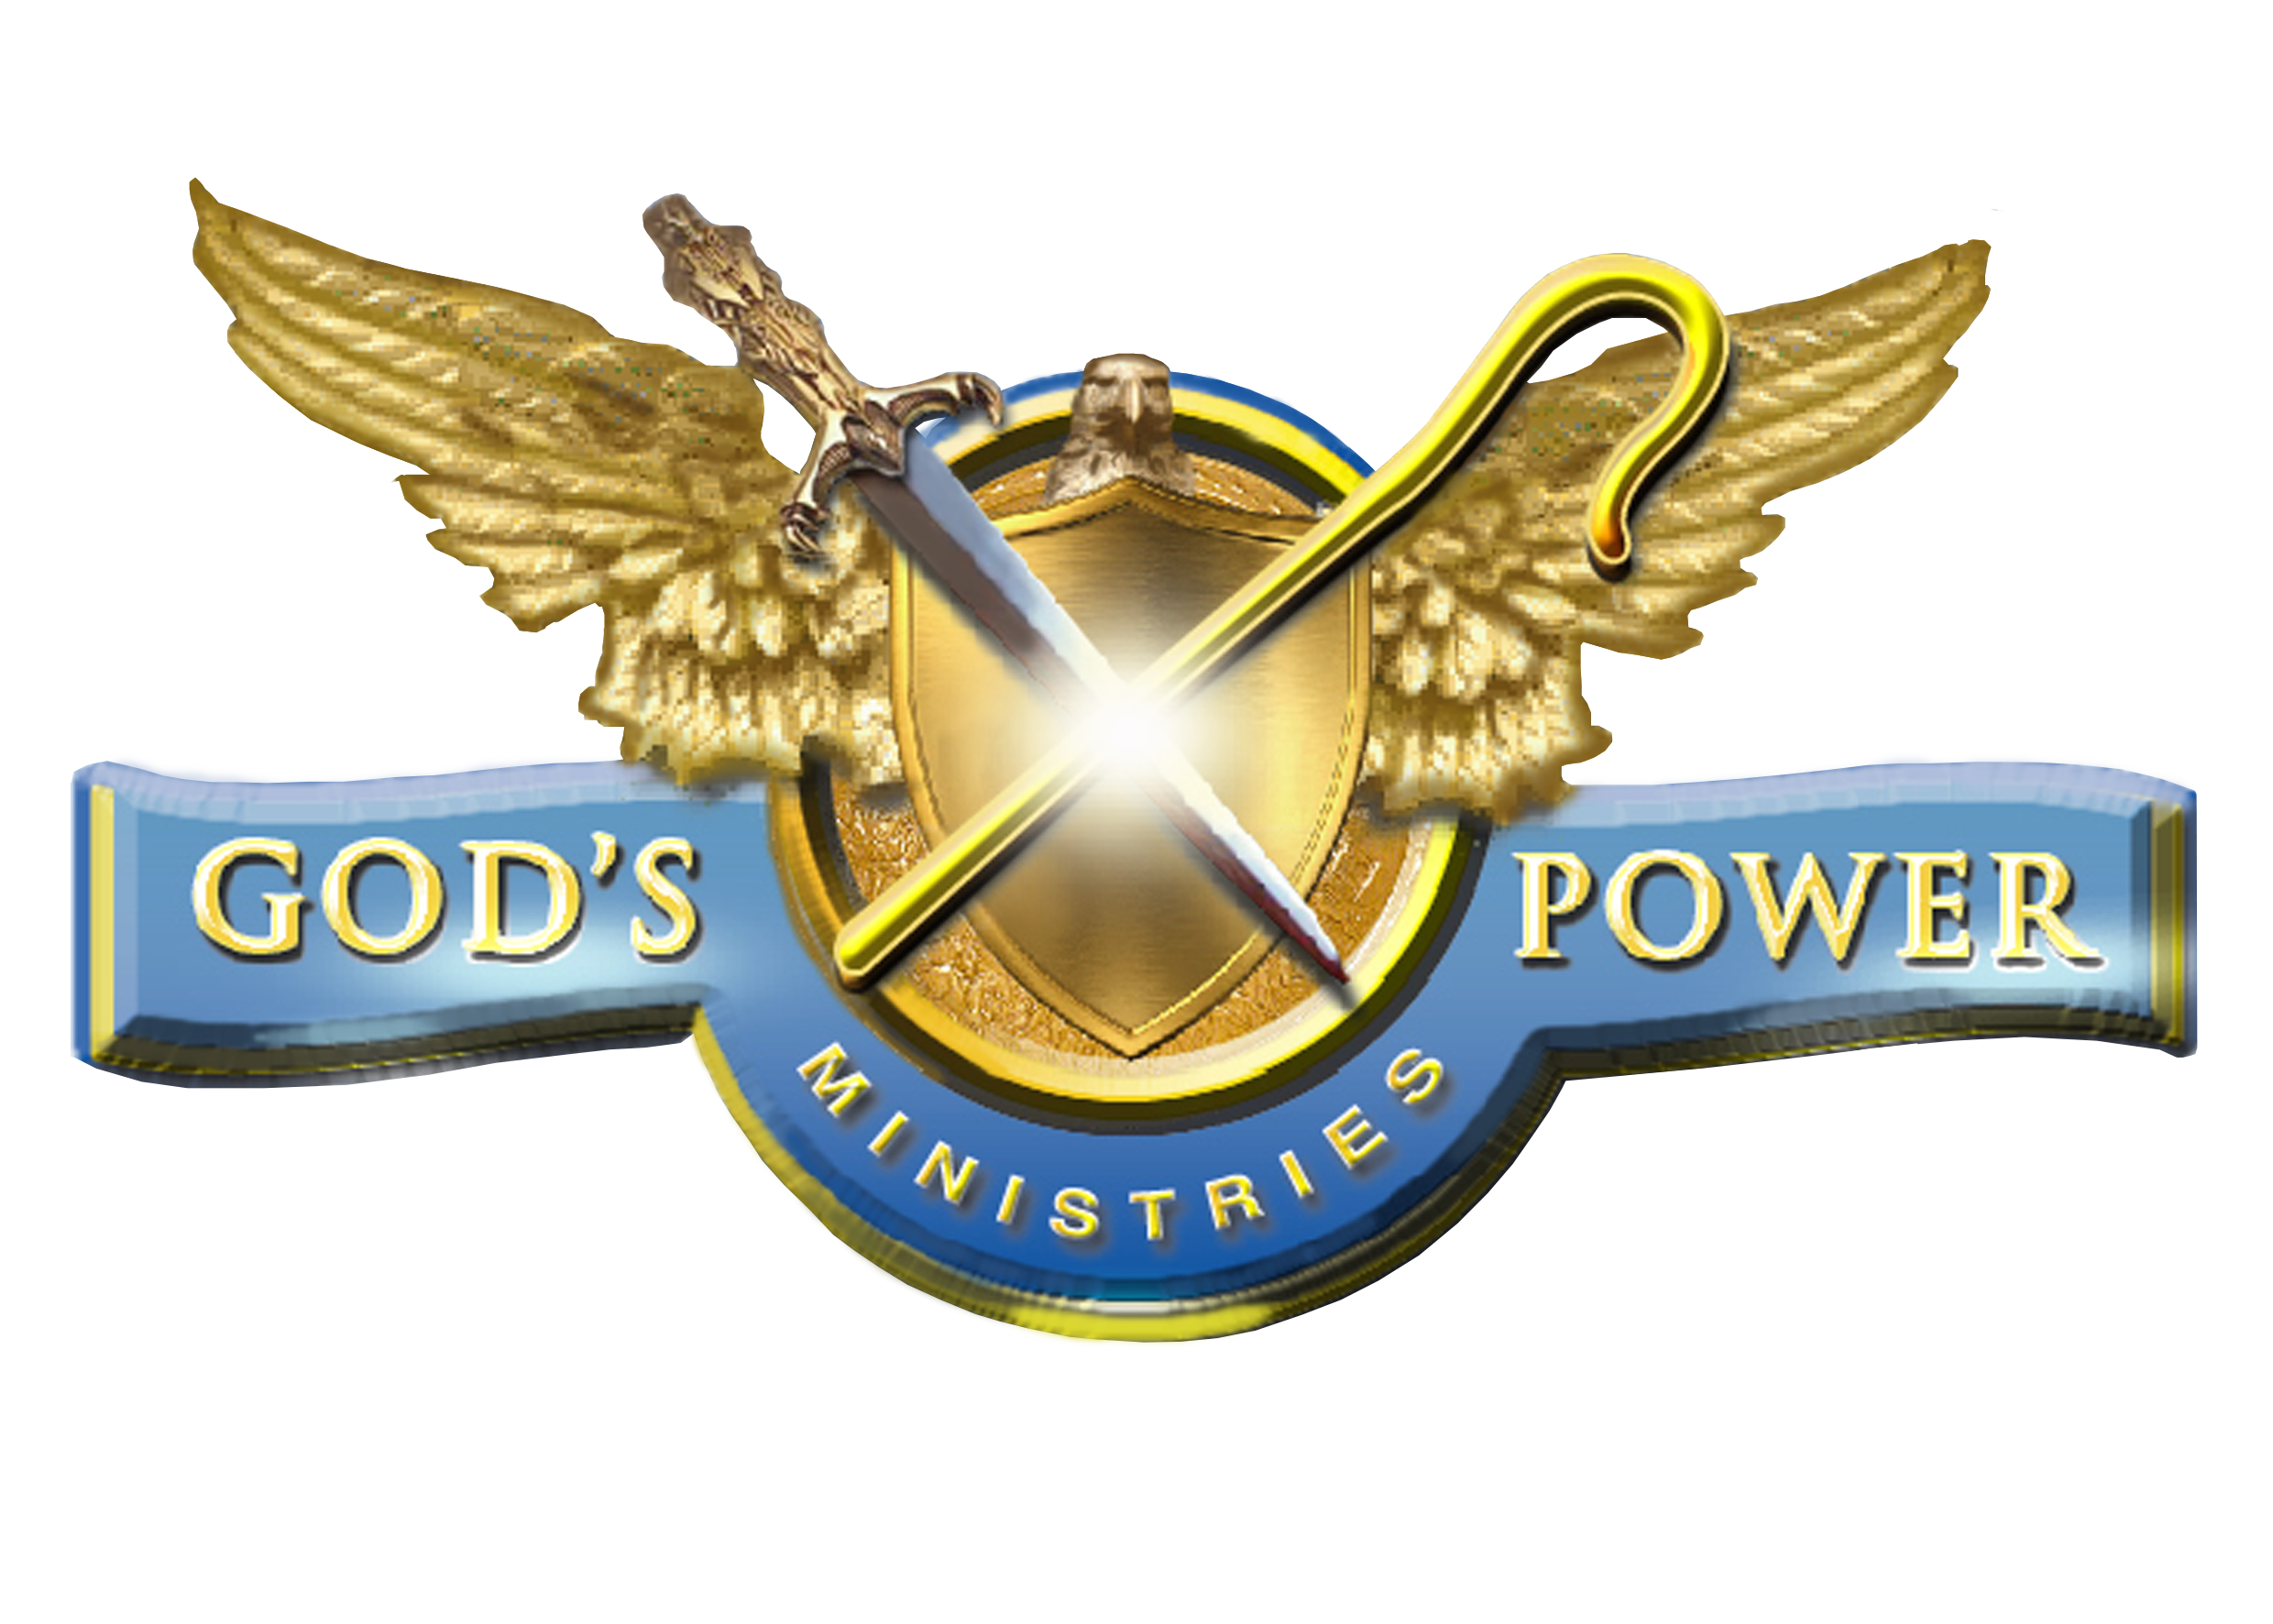 God's Power Ministries